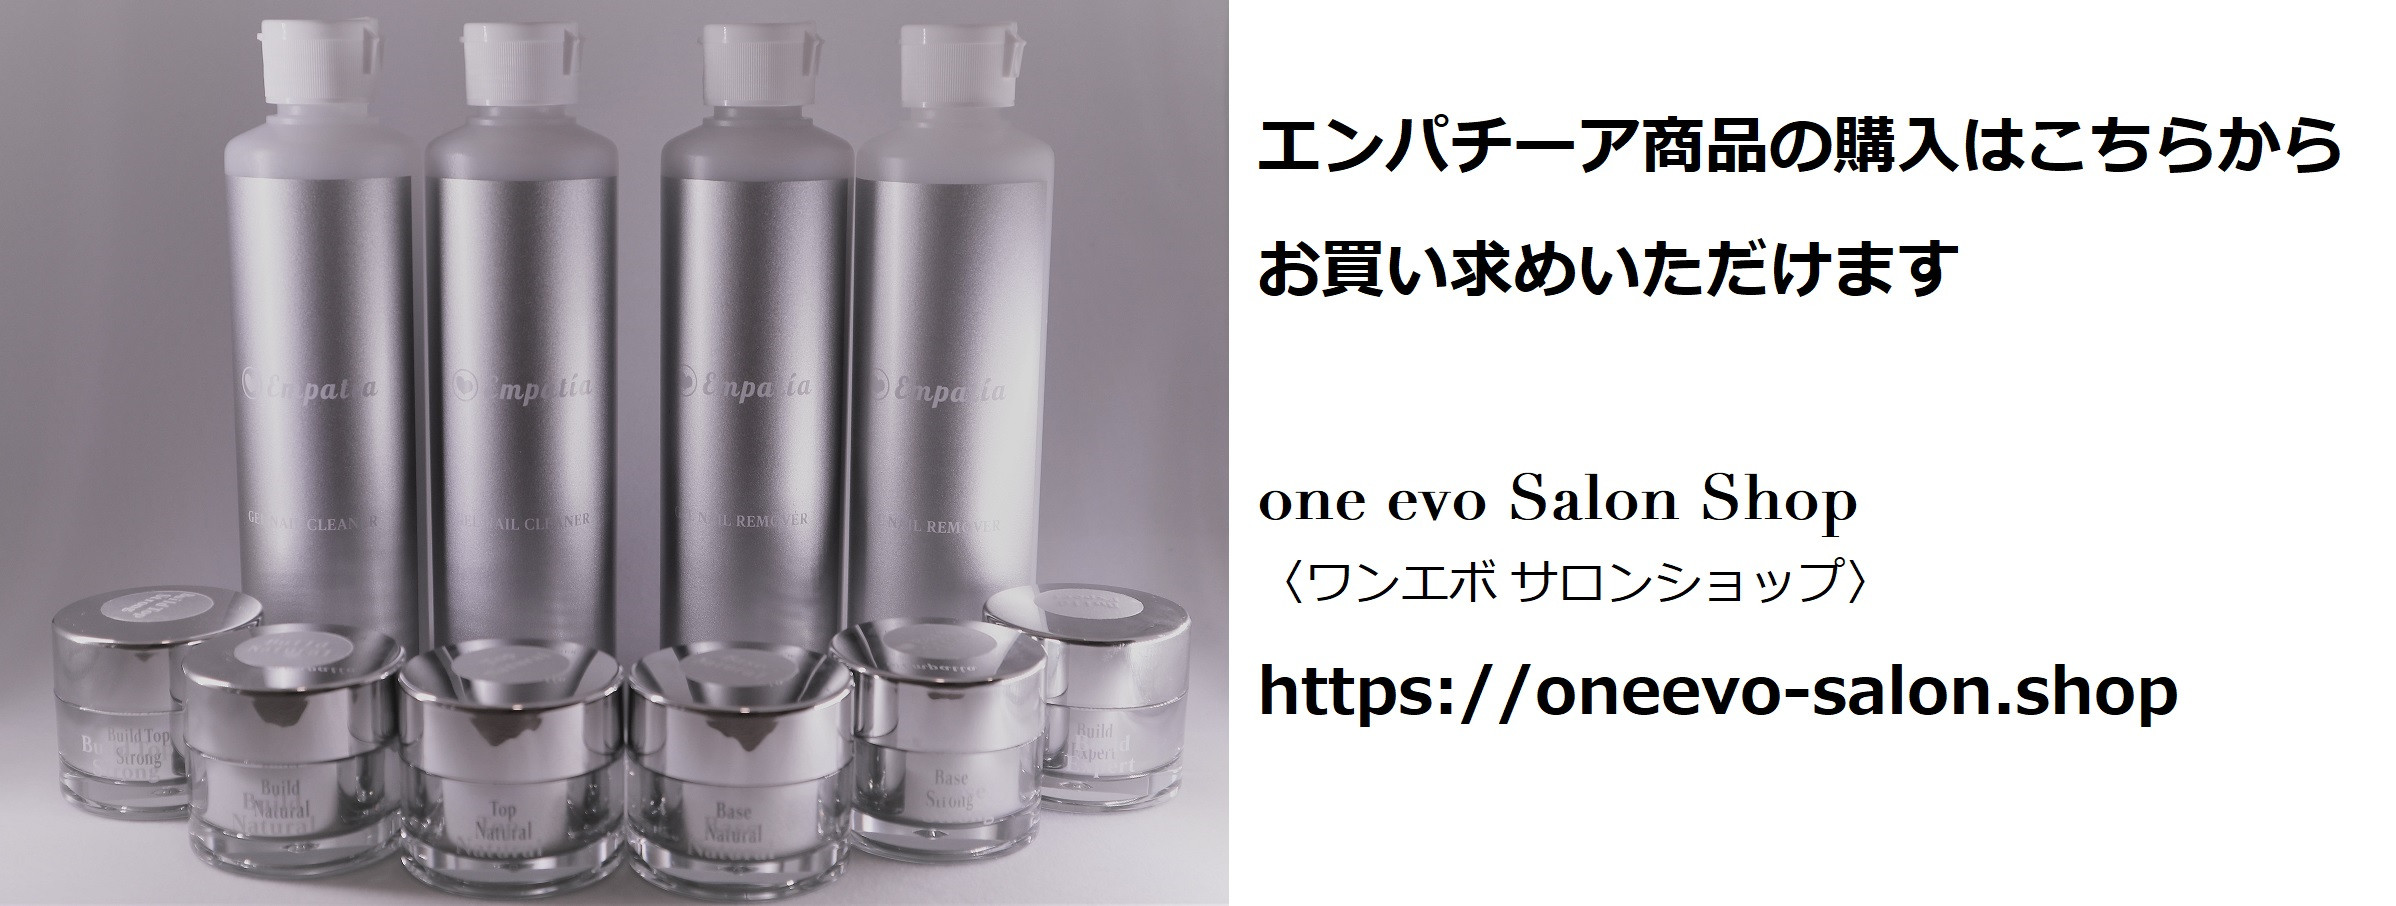 one evo Salon Shop